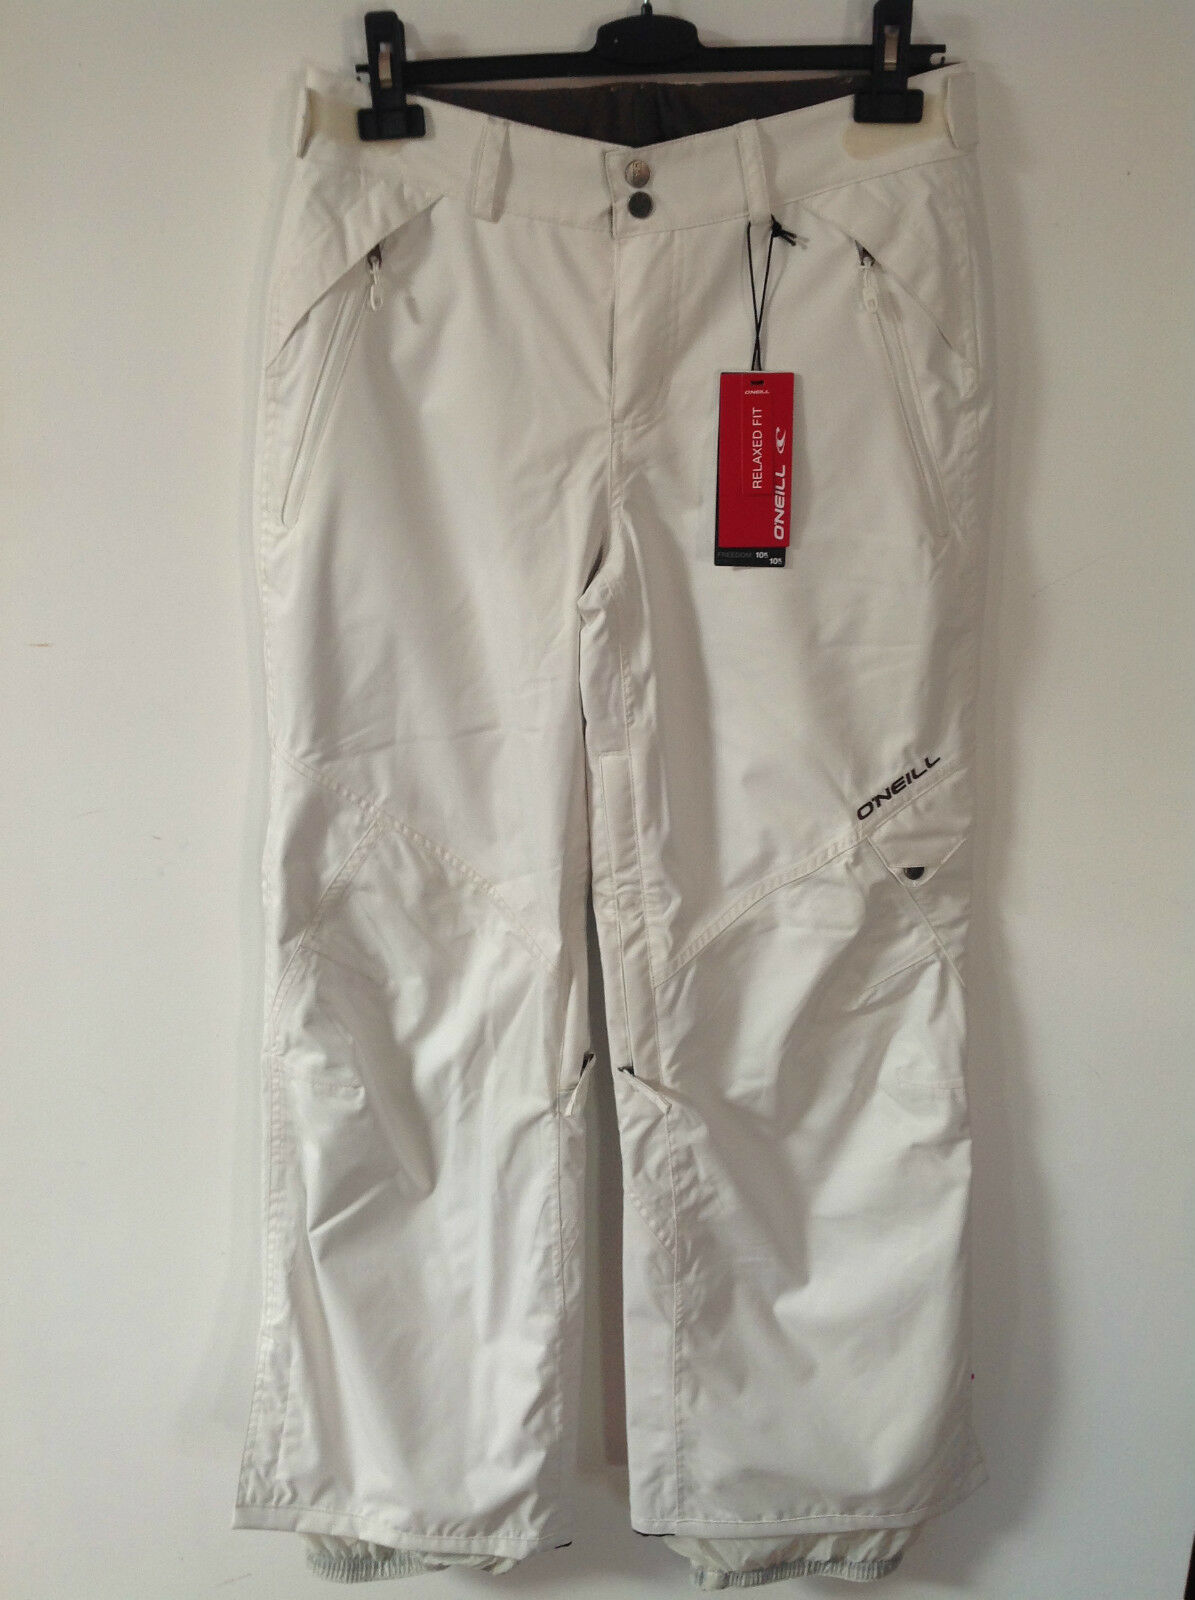 O'NEILL POWDER WHITE FREEDOM SERIES RELAXED FIT SKI TROUSERS  S   .99   BNWT